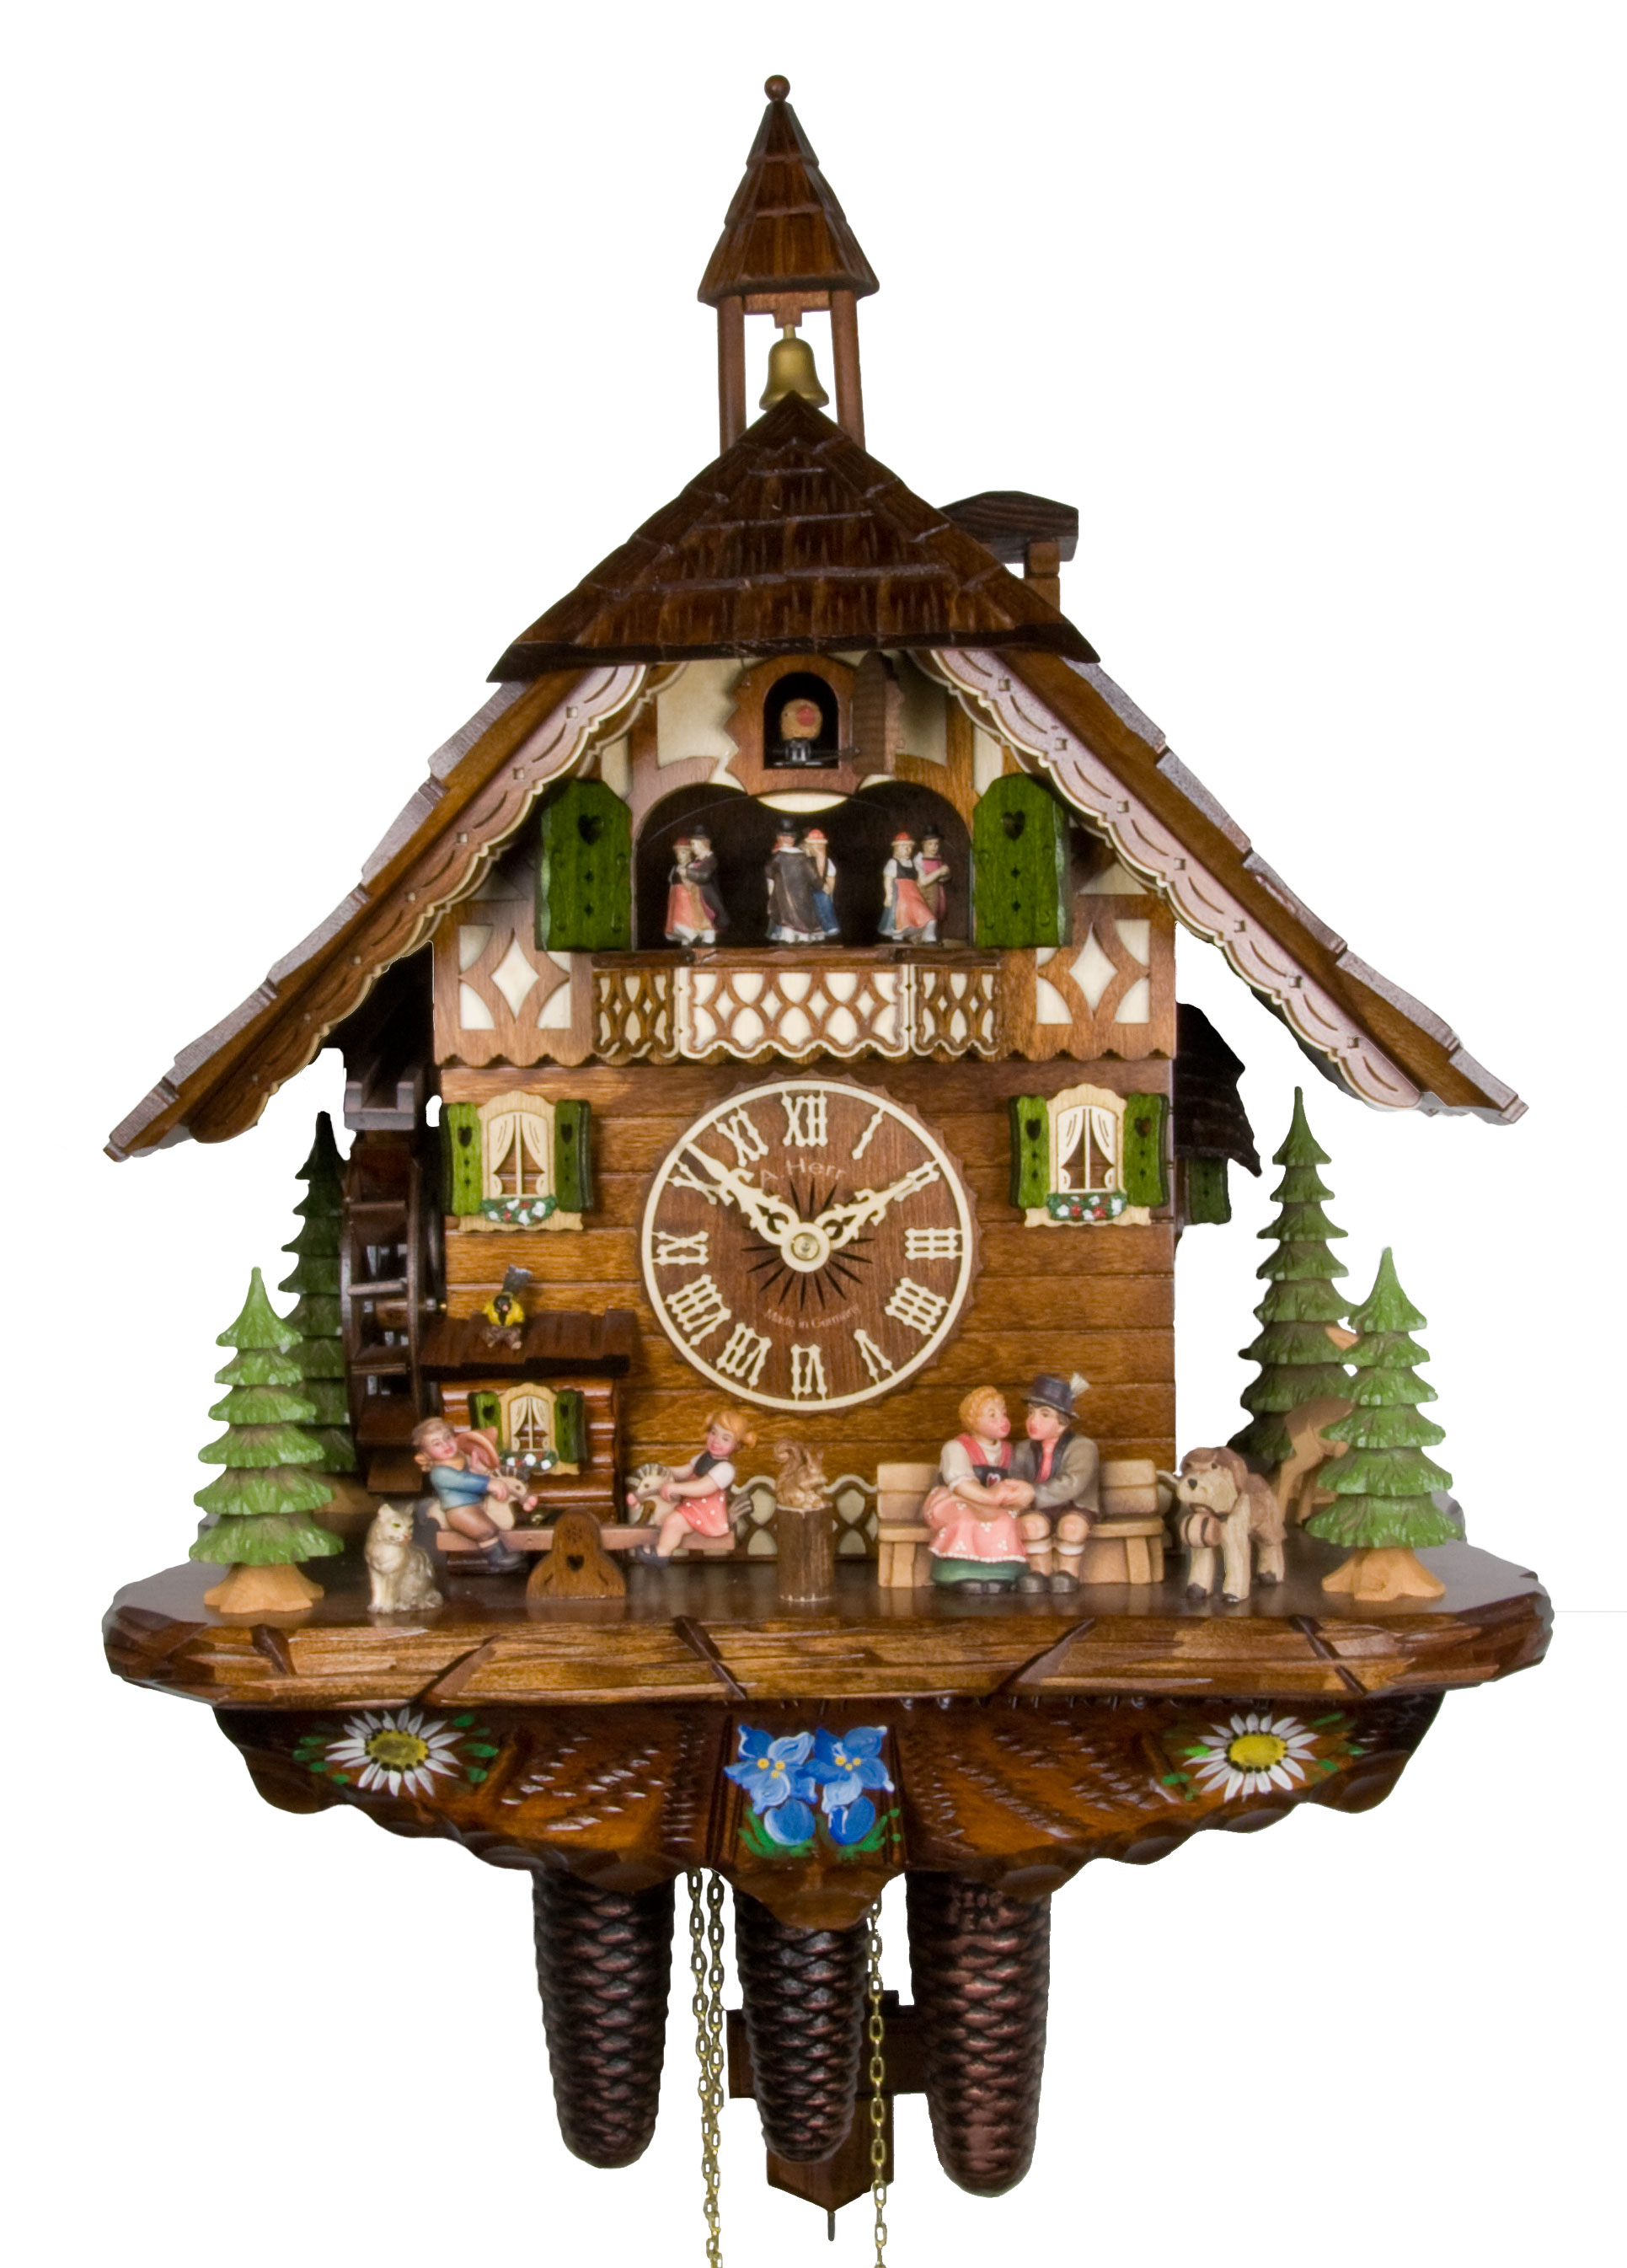 Cuckoo clock shop adolf herr How to make a cuckoo clock